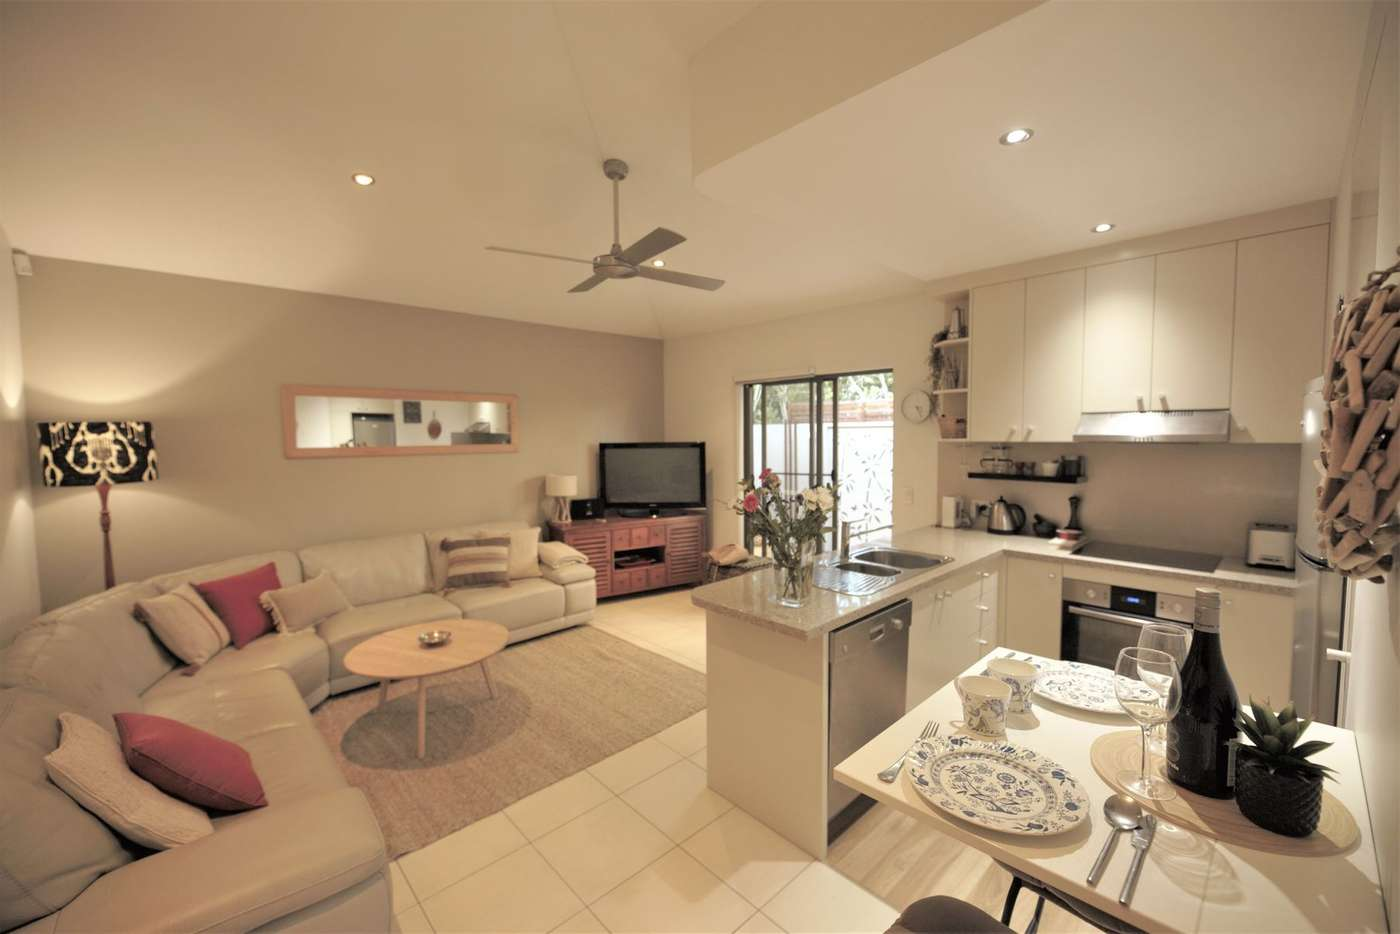 Fifth view of Homely villa listing, 3/15 Opal Street, Cooroy QLD 4563